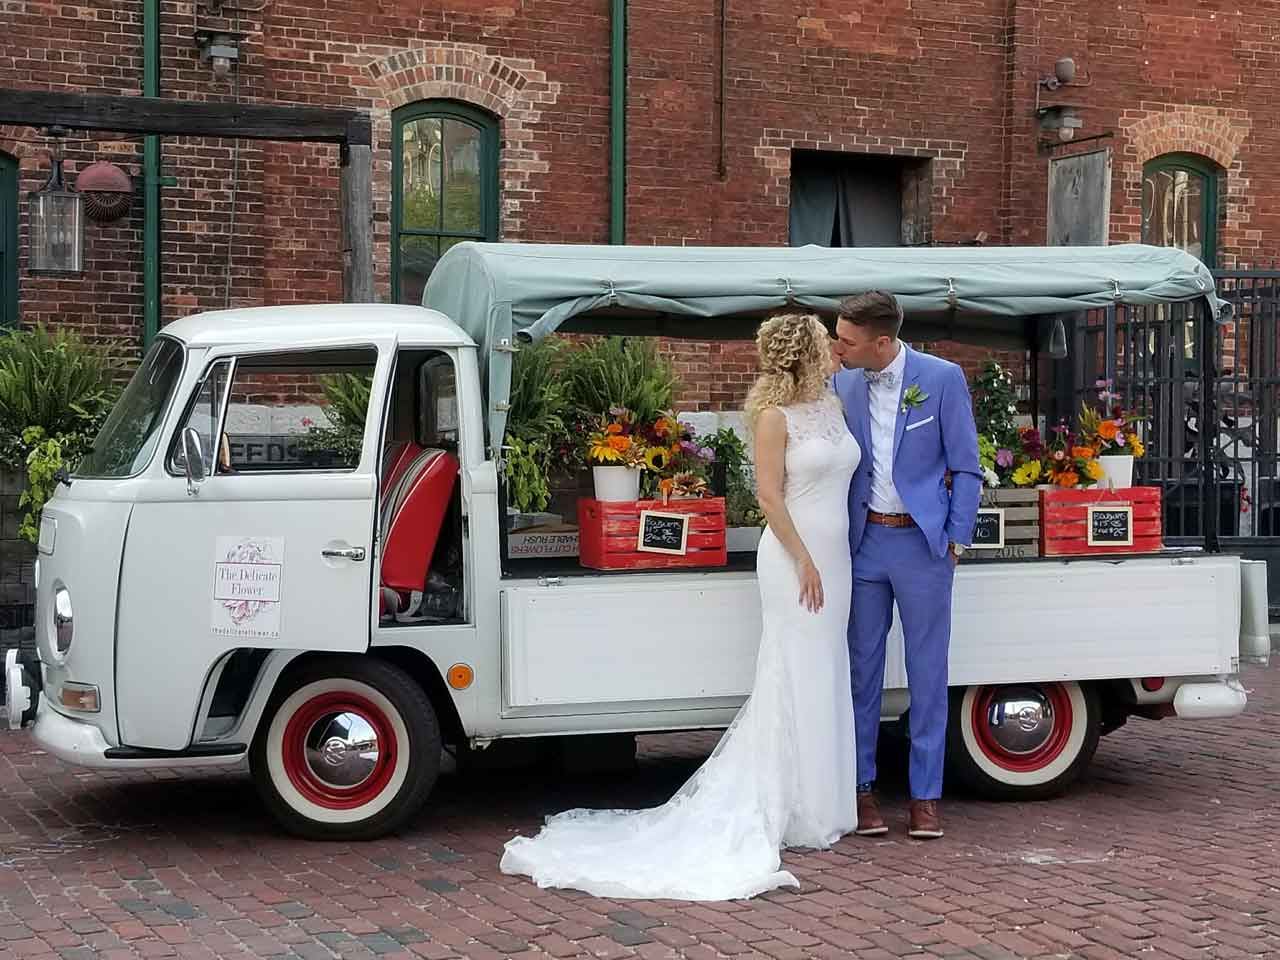 The Delicate Flower Truck Wedding Photo